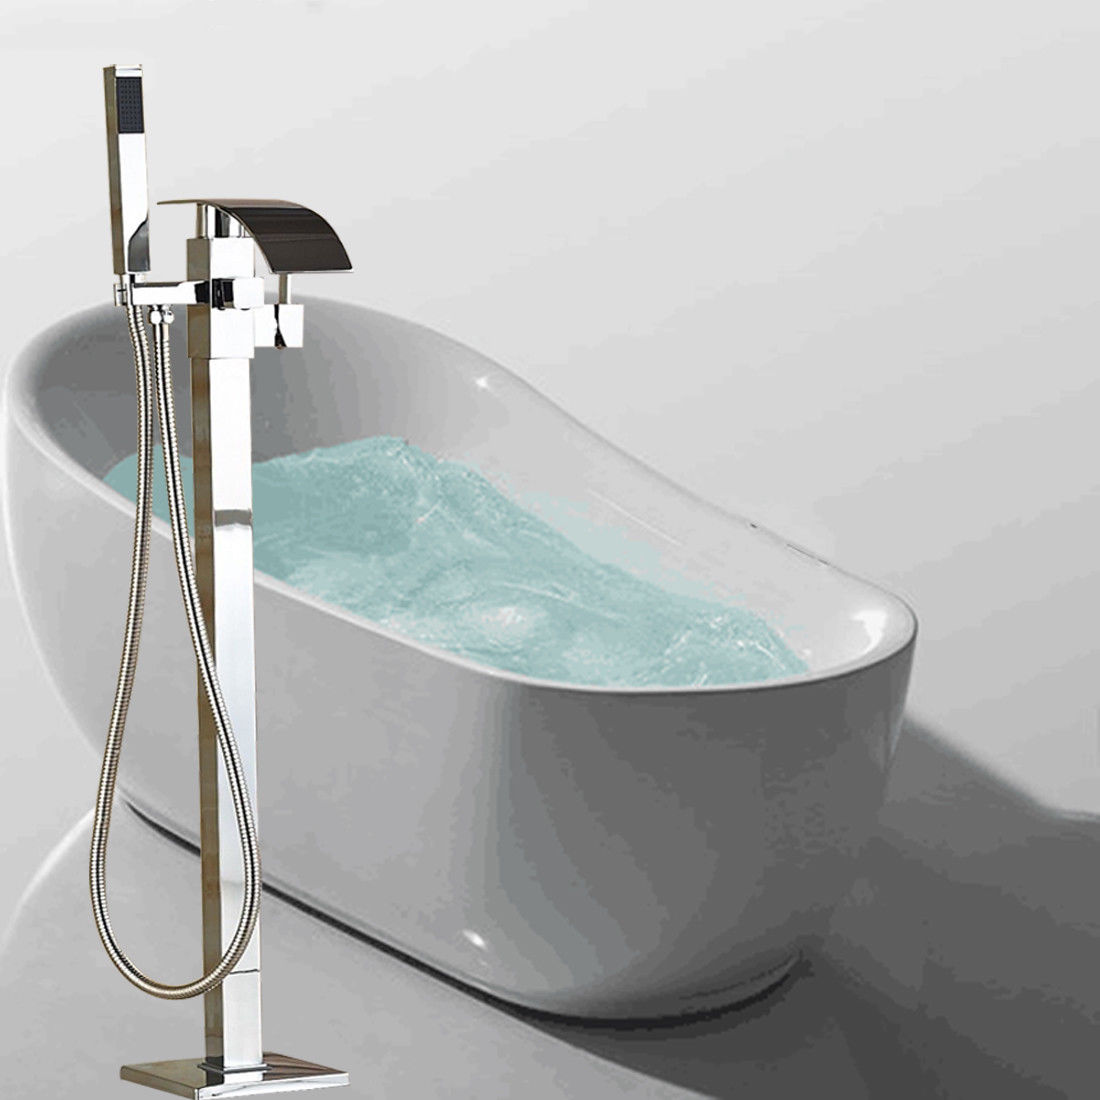 Floor Mount Chrome Waterfall Bathtub Faucet Hand Shower Tub Filler Standing Bathroom Faucet Mixer Tap oil rubbed bronze waterfall tub mixer faucet free standing floor mount bathtub faucet with handshower